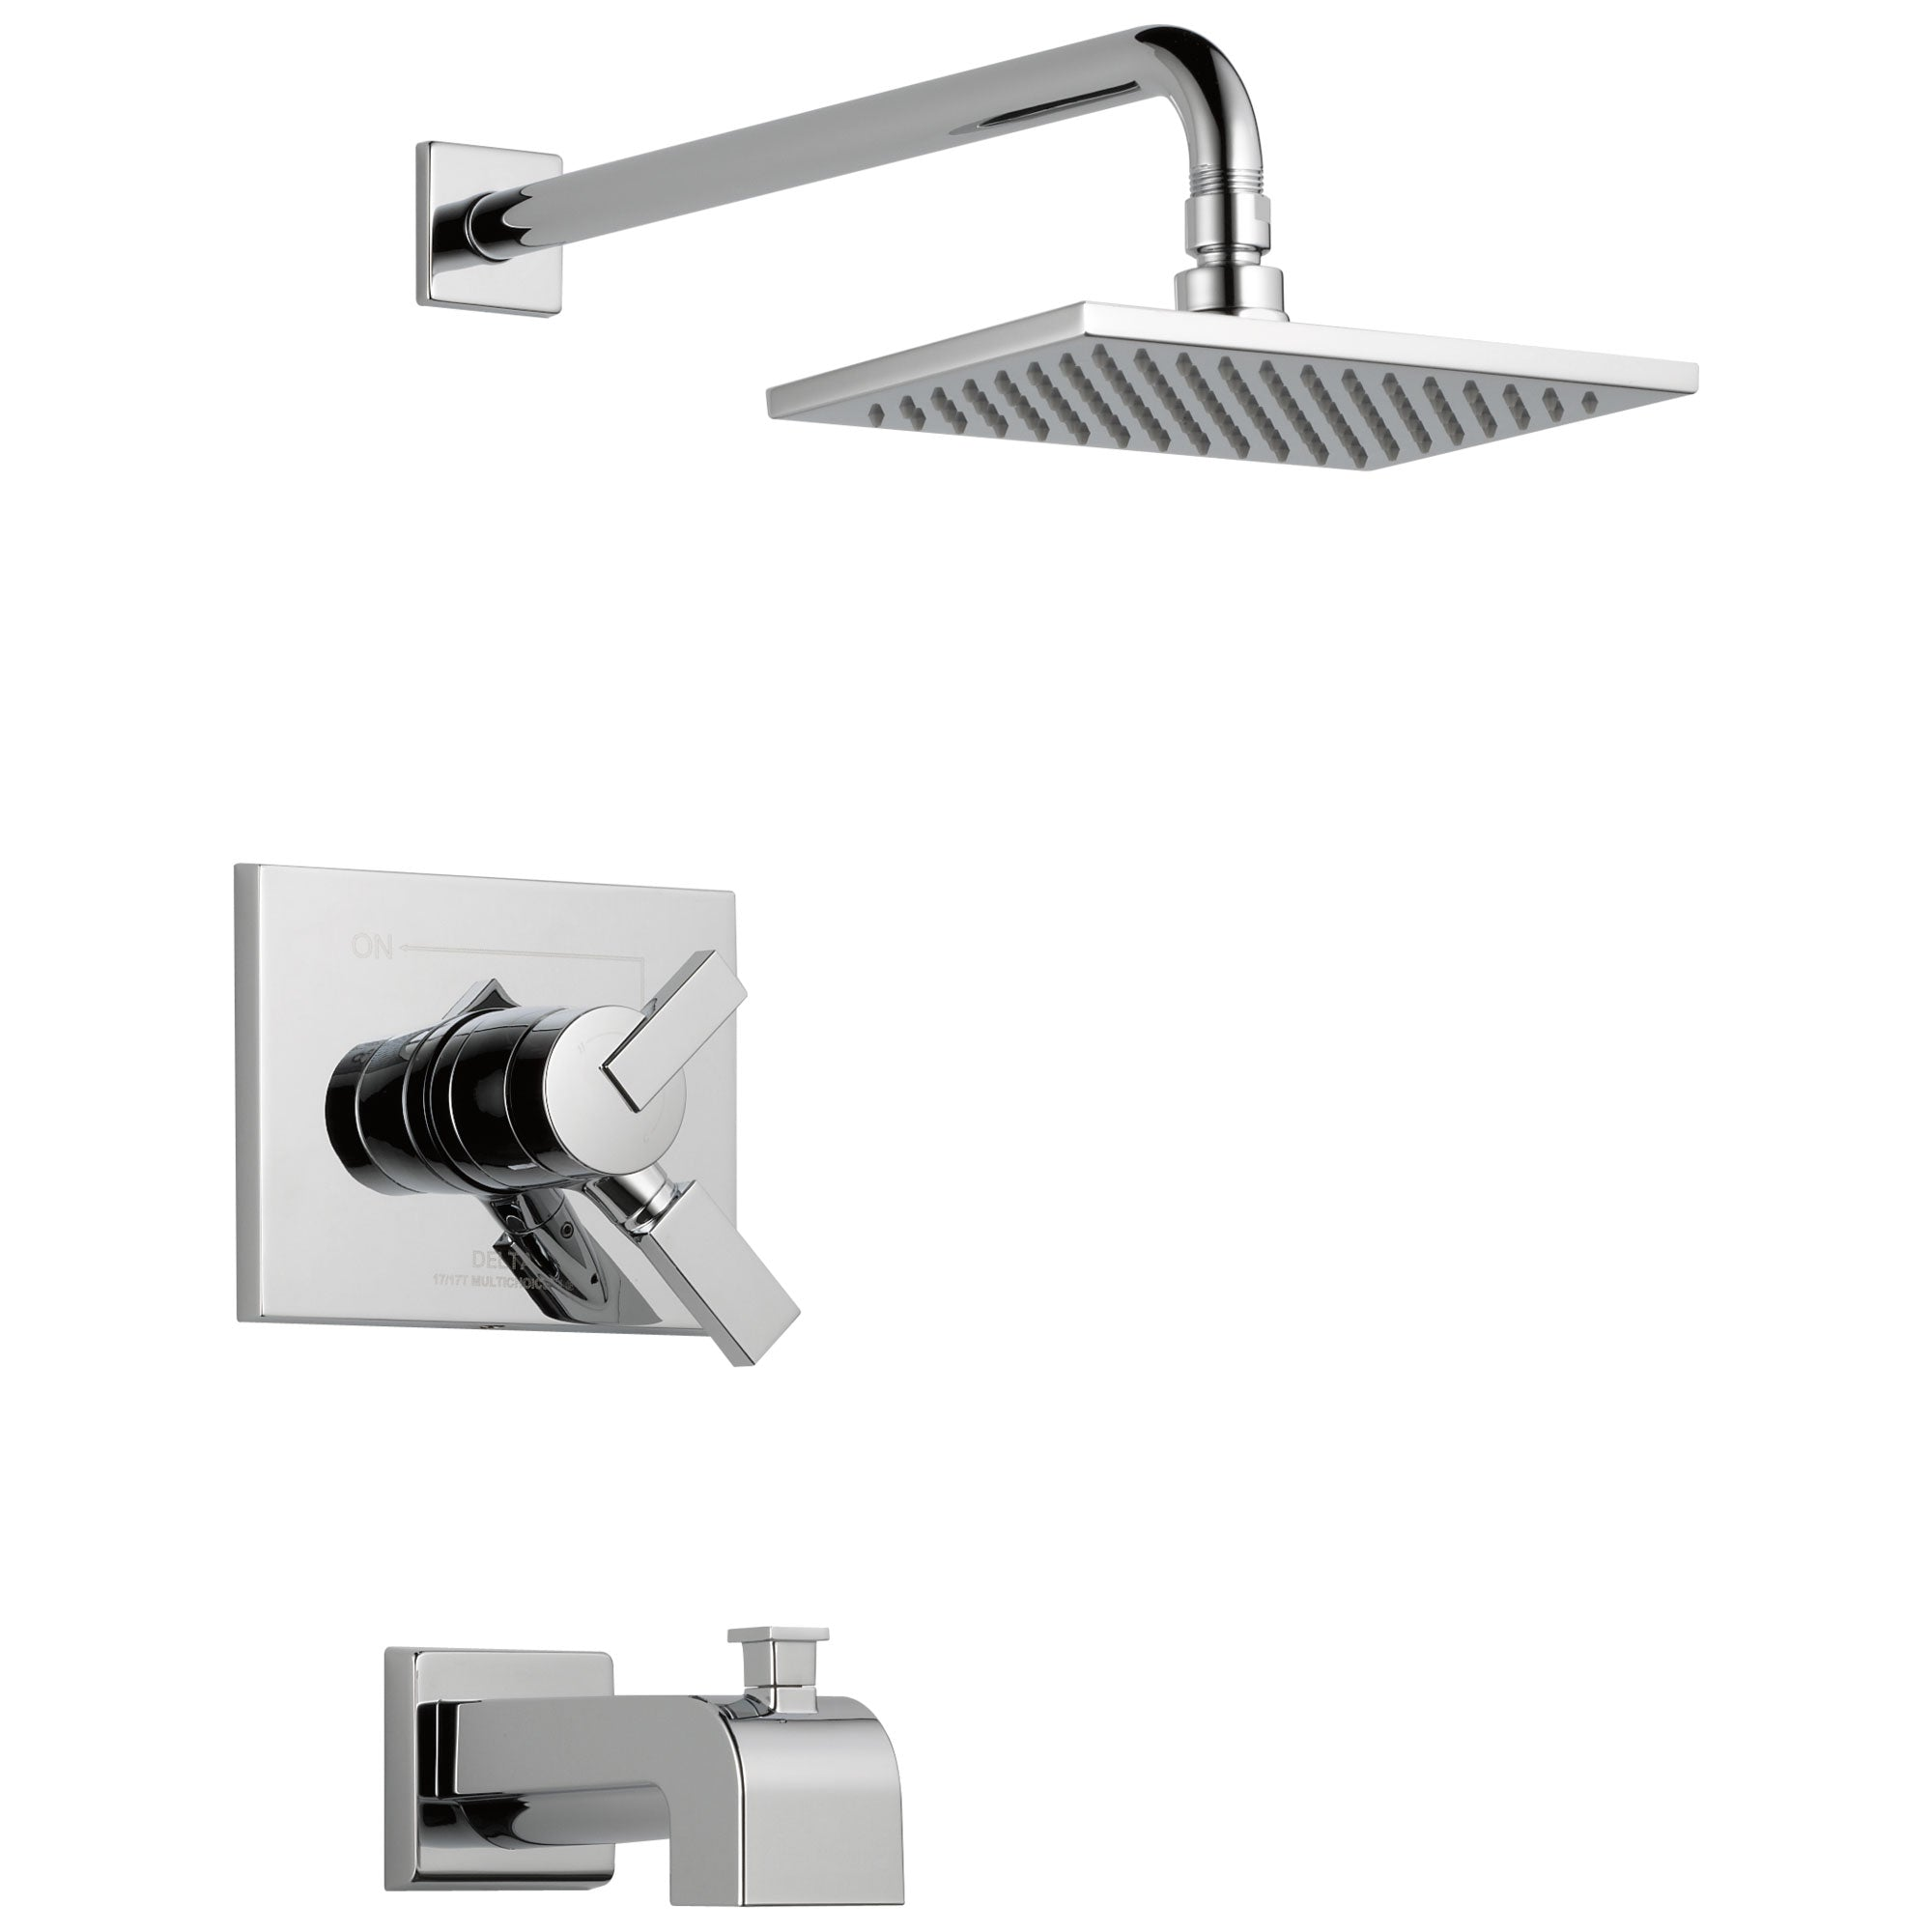 Delta Vero Chrome Finish Water Efficient Tub & Shower Combo Faucet Includes Monitor 17 Series Cartridge, Handles, and Valve without Stops D3341V